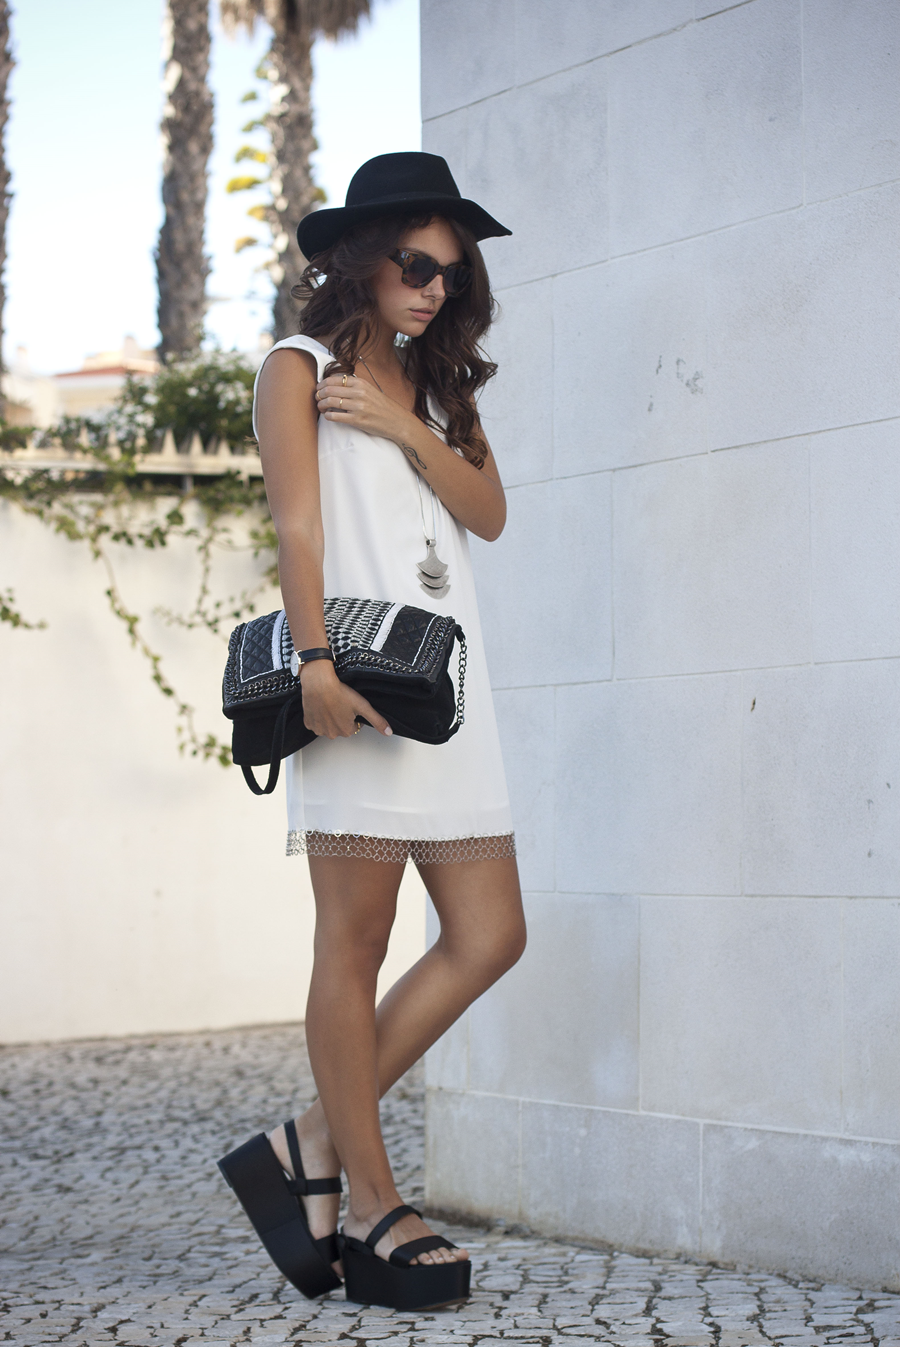 Mafalda Castro is wearing a white dress from ÂMÈ Concept and bag and shoes from Zara, sunglasses from Zero UV